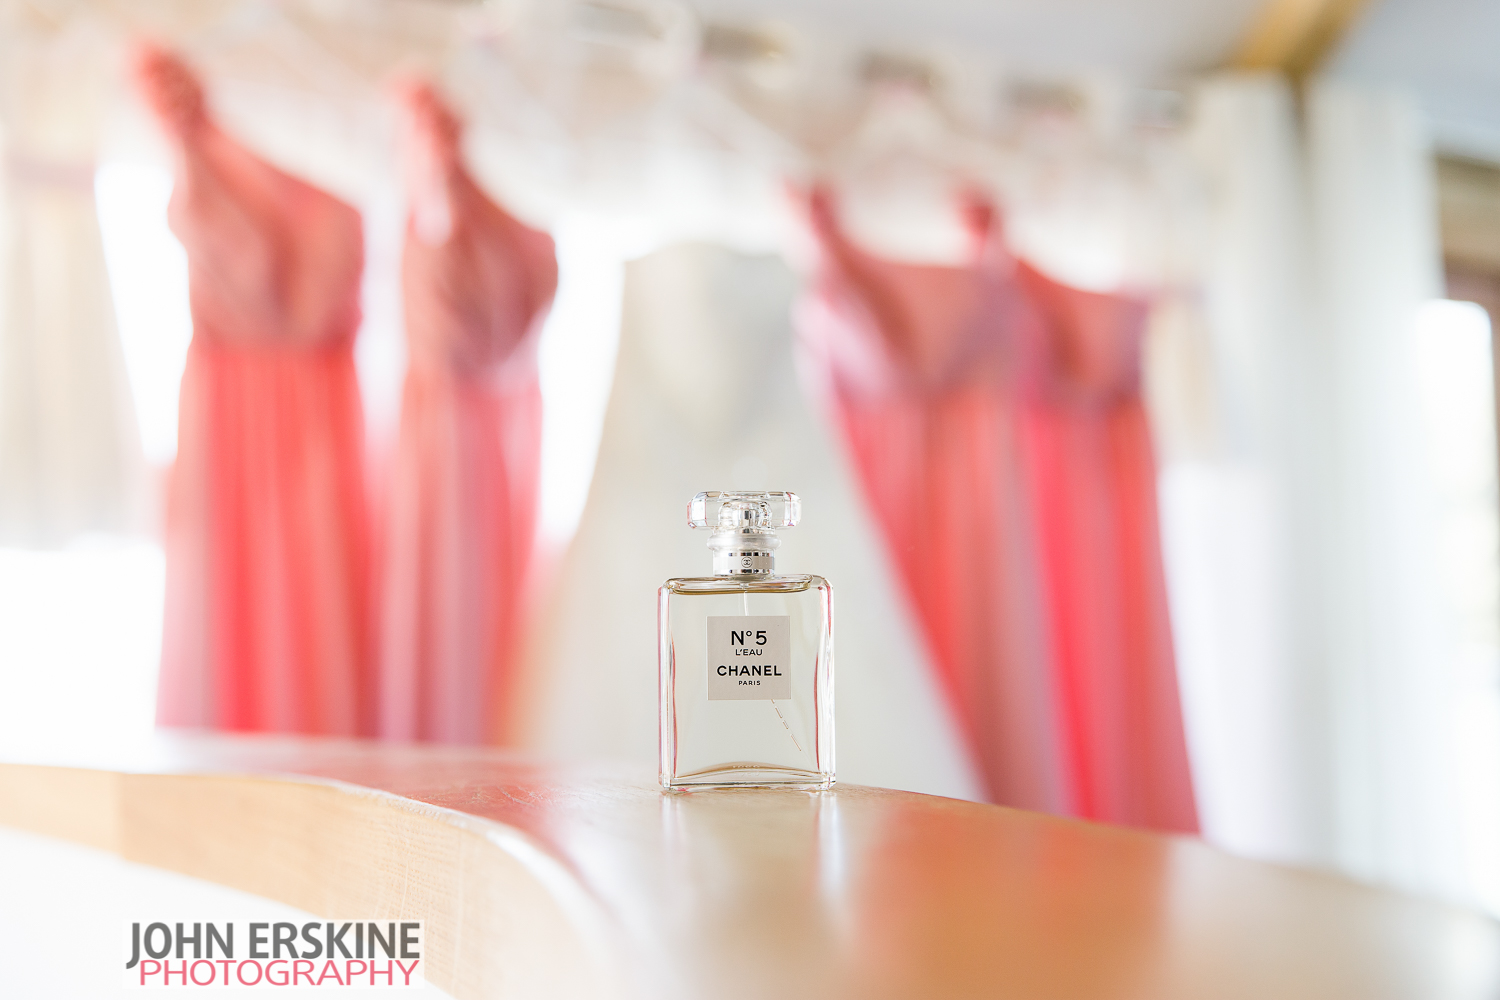 Dior Wedding Perfume Parfum is a classic choice